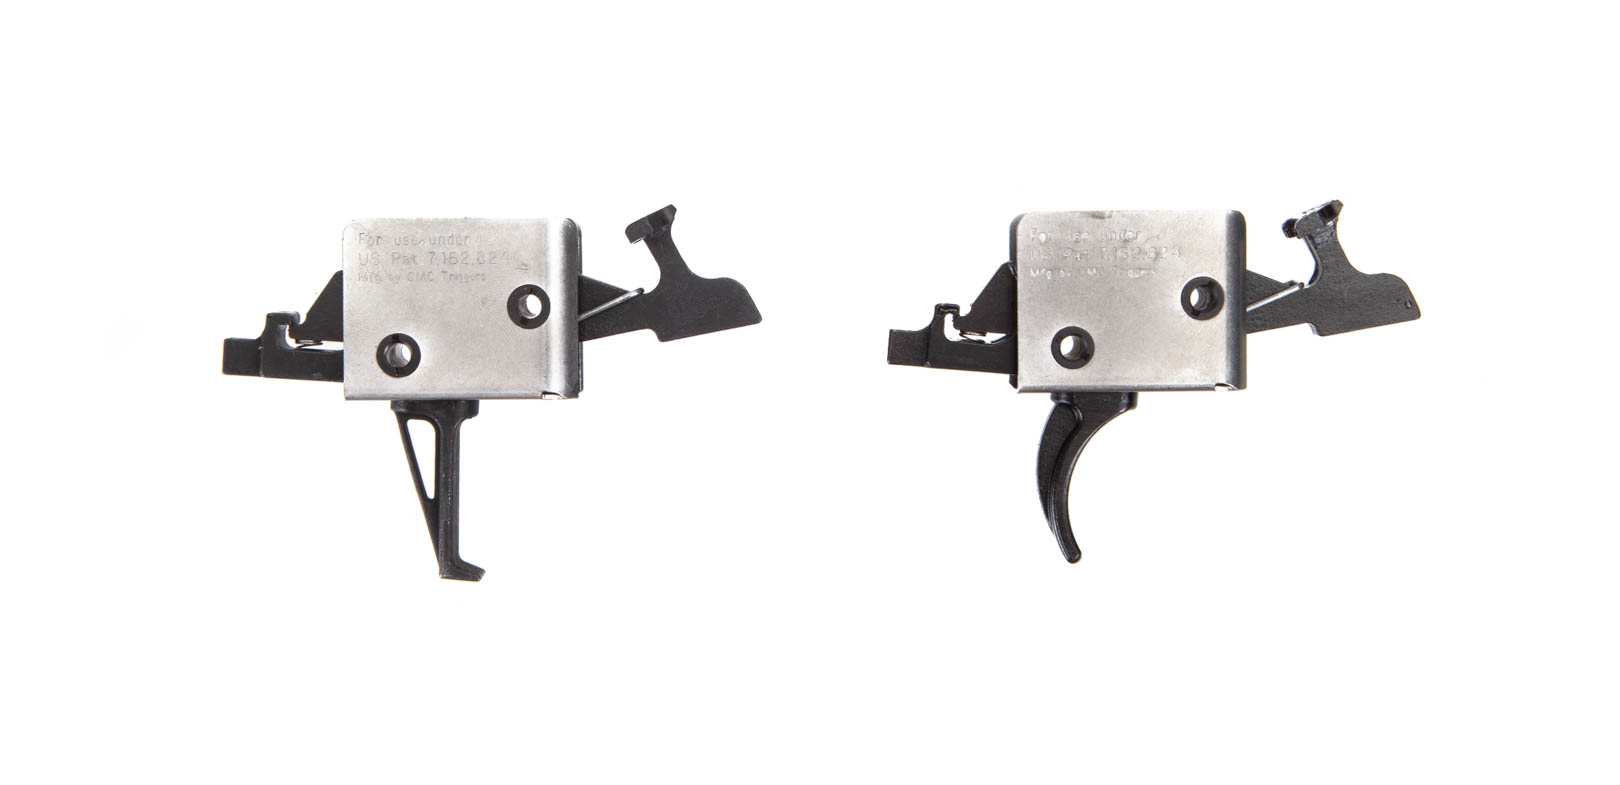 CMC Triggers AR-15 / AR-10 Single Stage Drop-in Trigger - 3 - 3.5 lbs